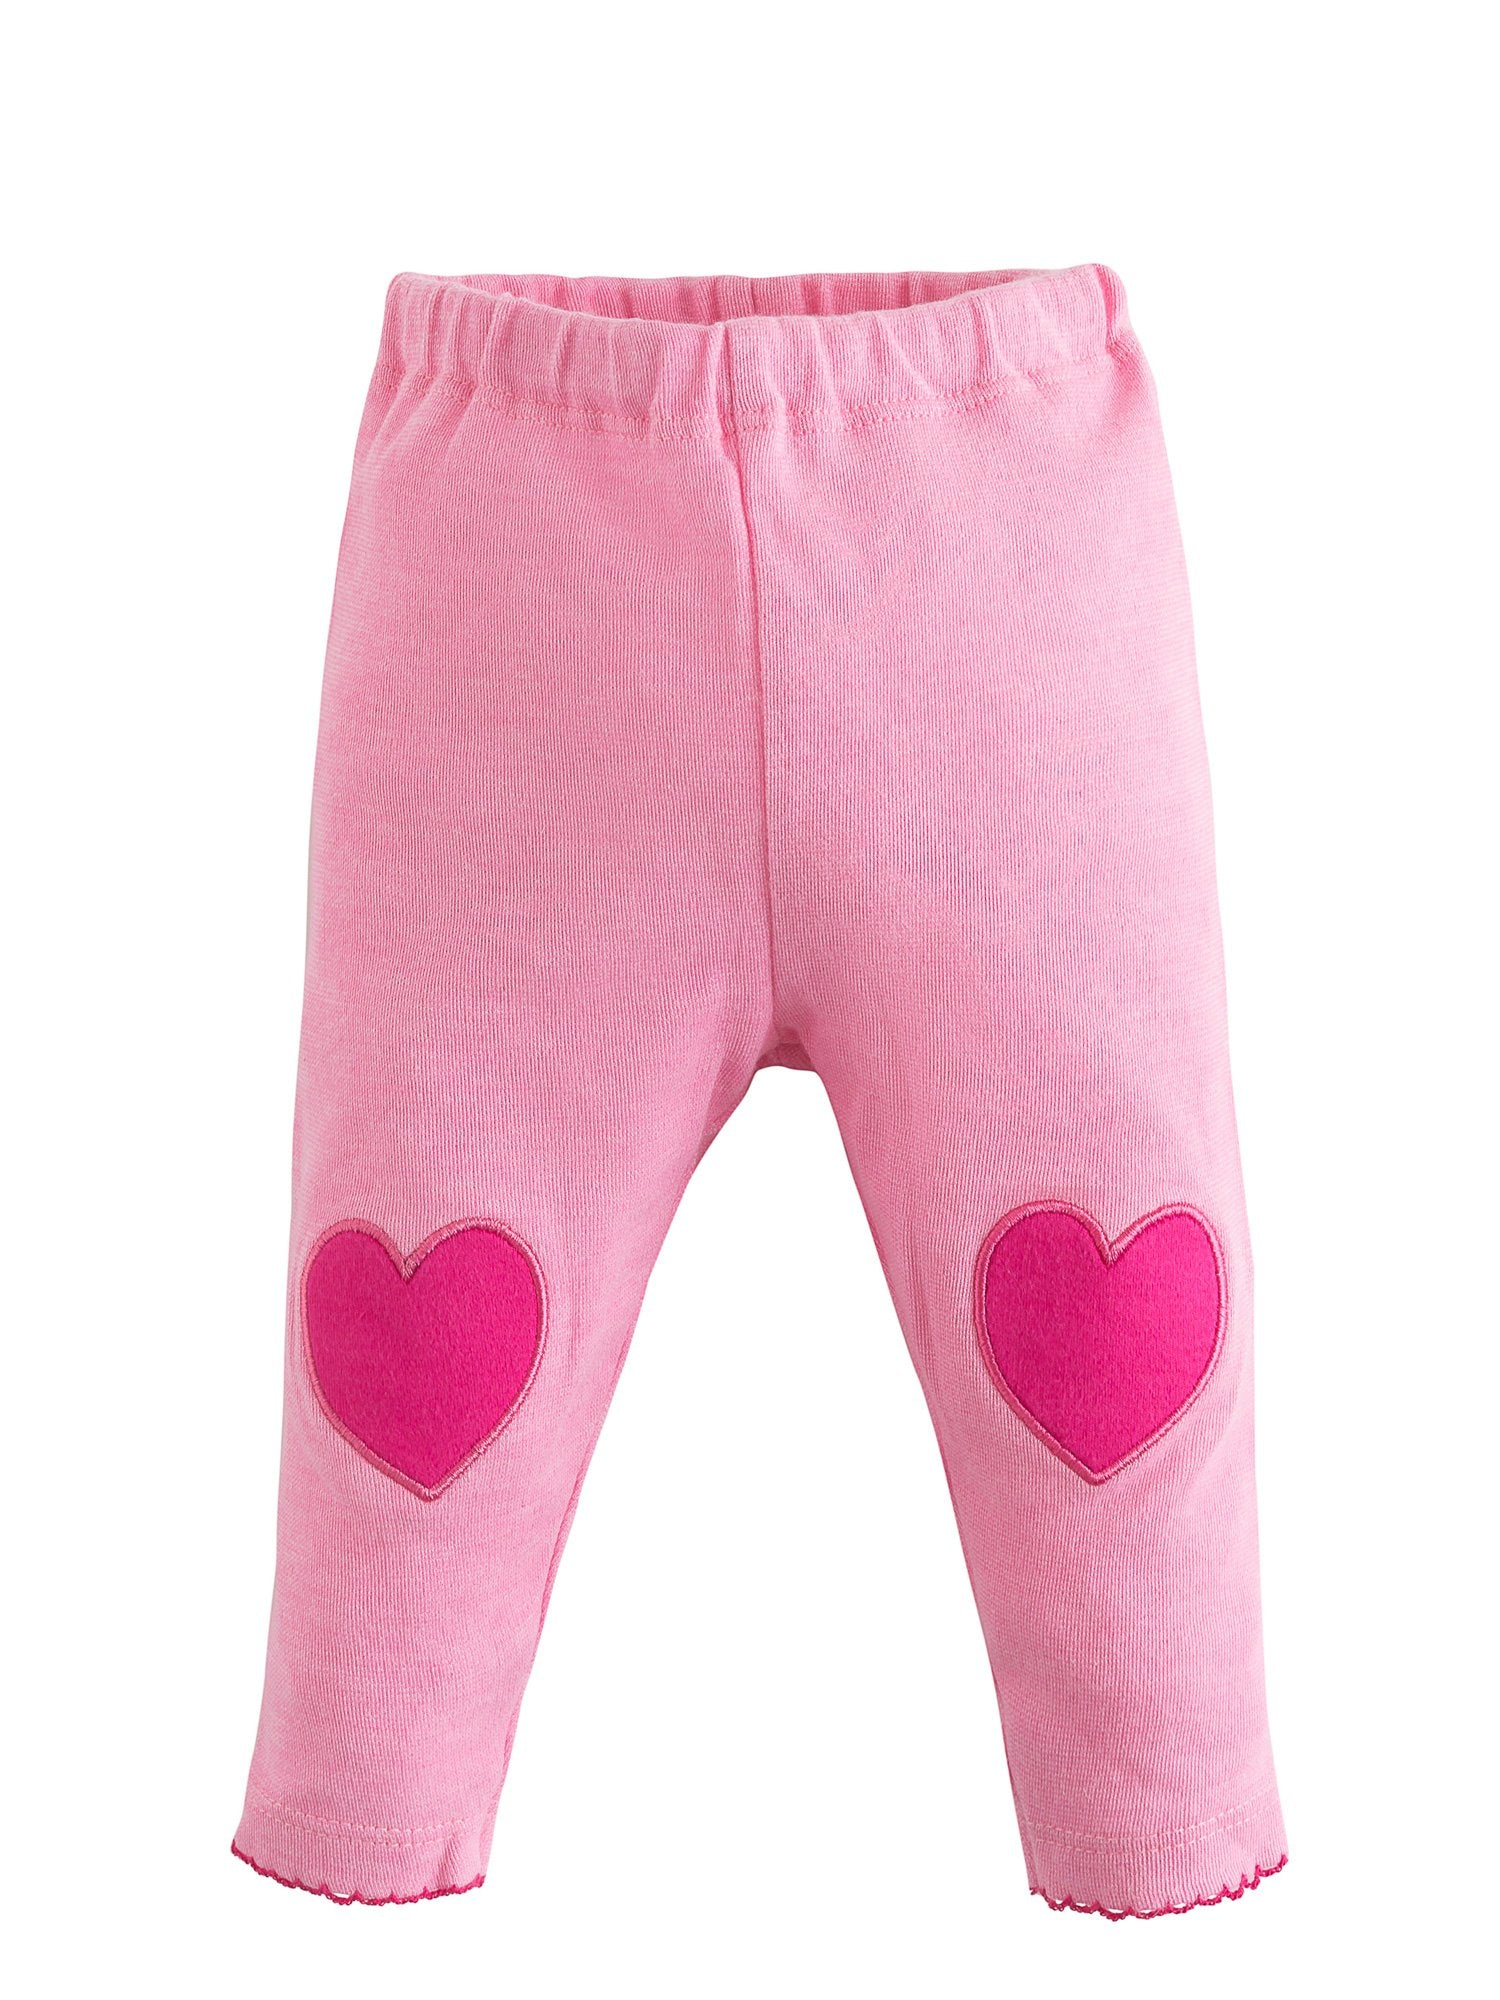 f0c32d995 Organic Cotton Baby Girl Pink Leggings with Heart Knee Patches ...